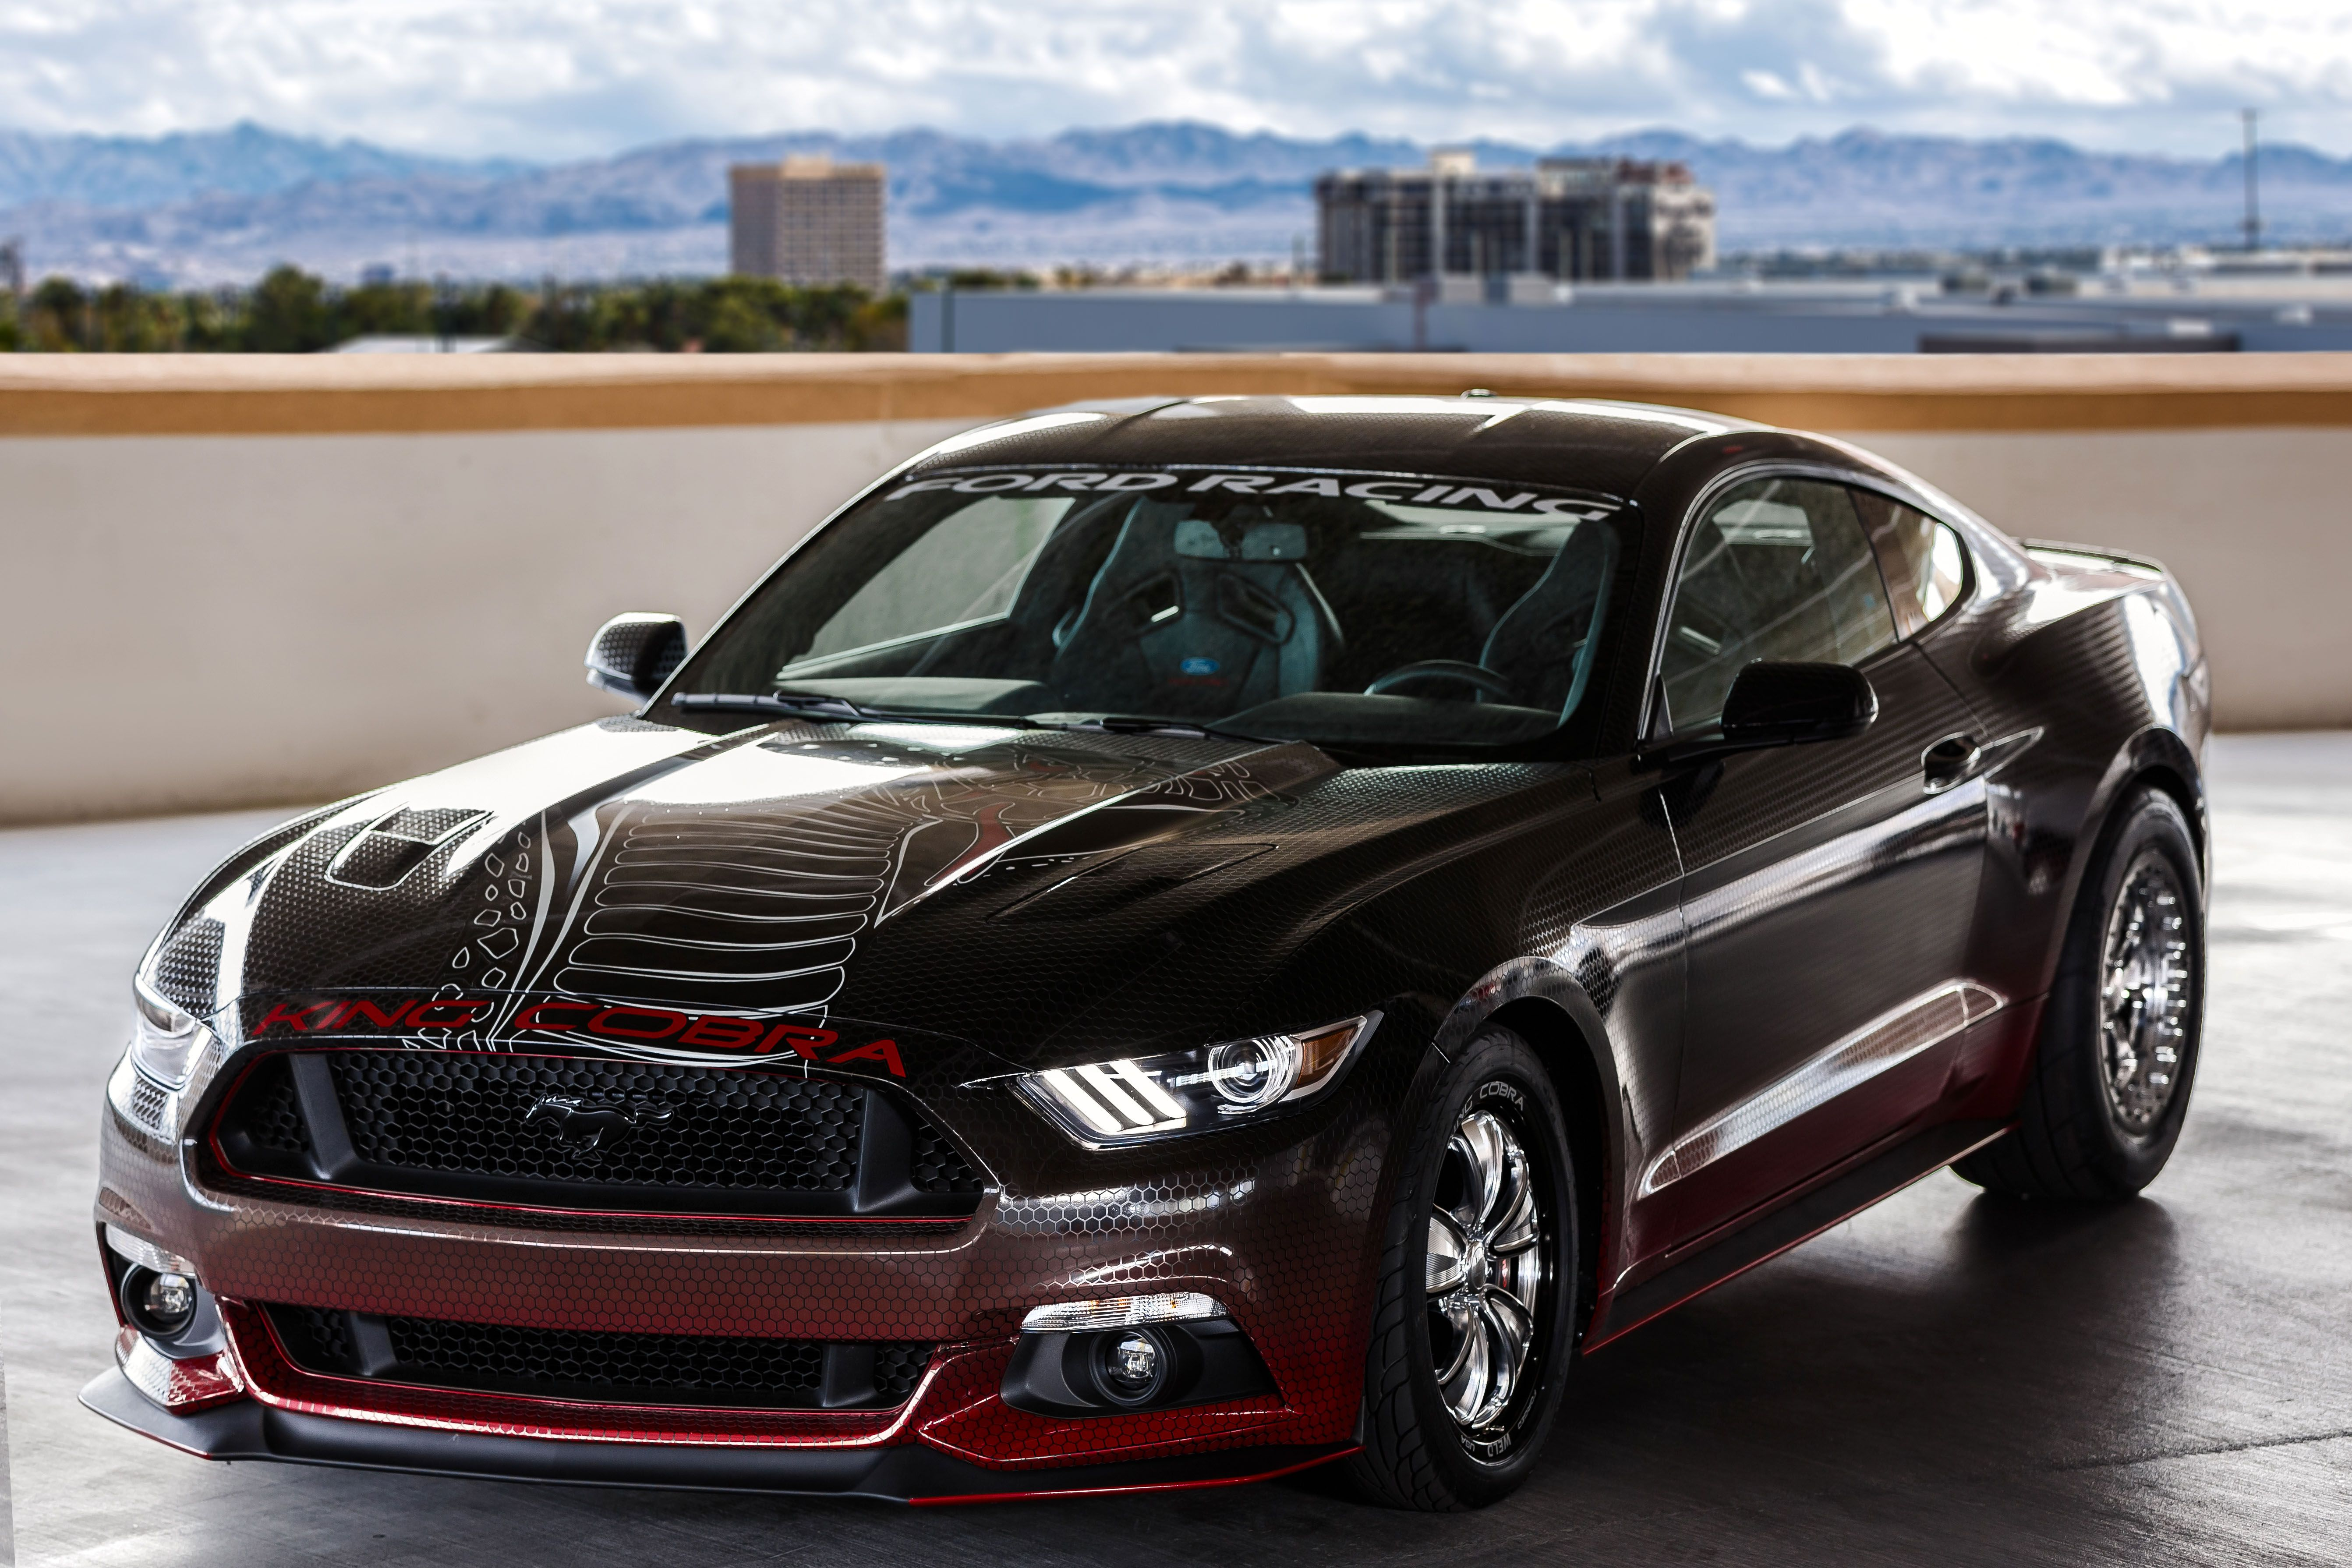 2015 Ford Mustang Gt King Cobra Ford Mustang 2015 Ford Mustang